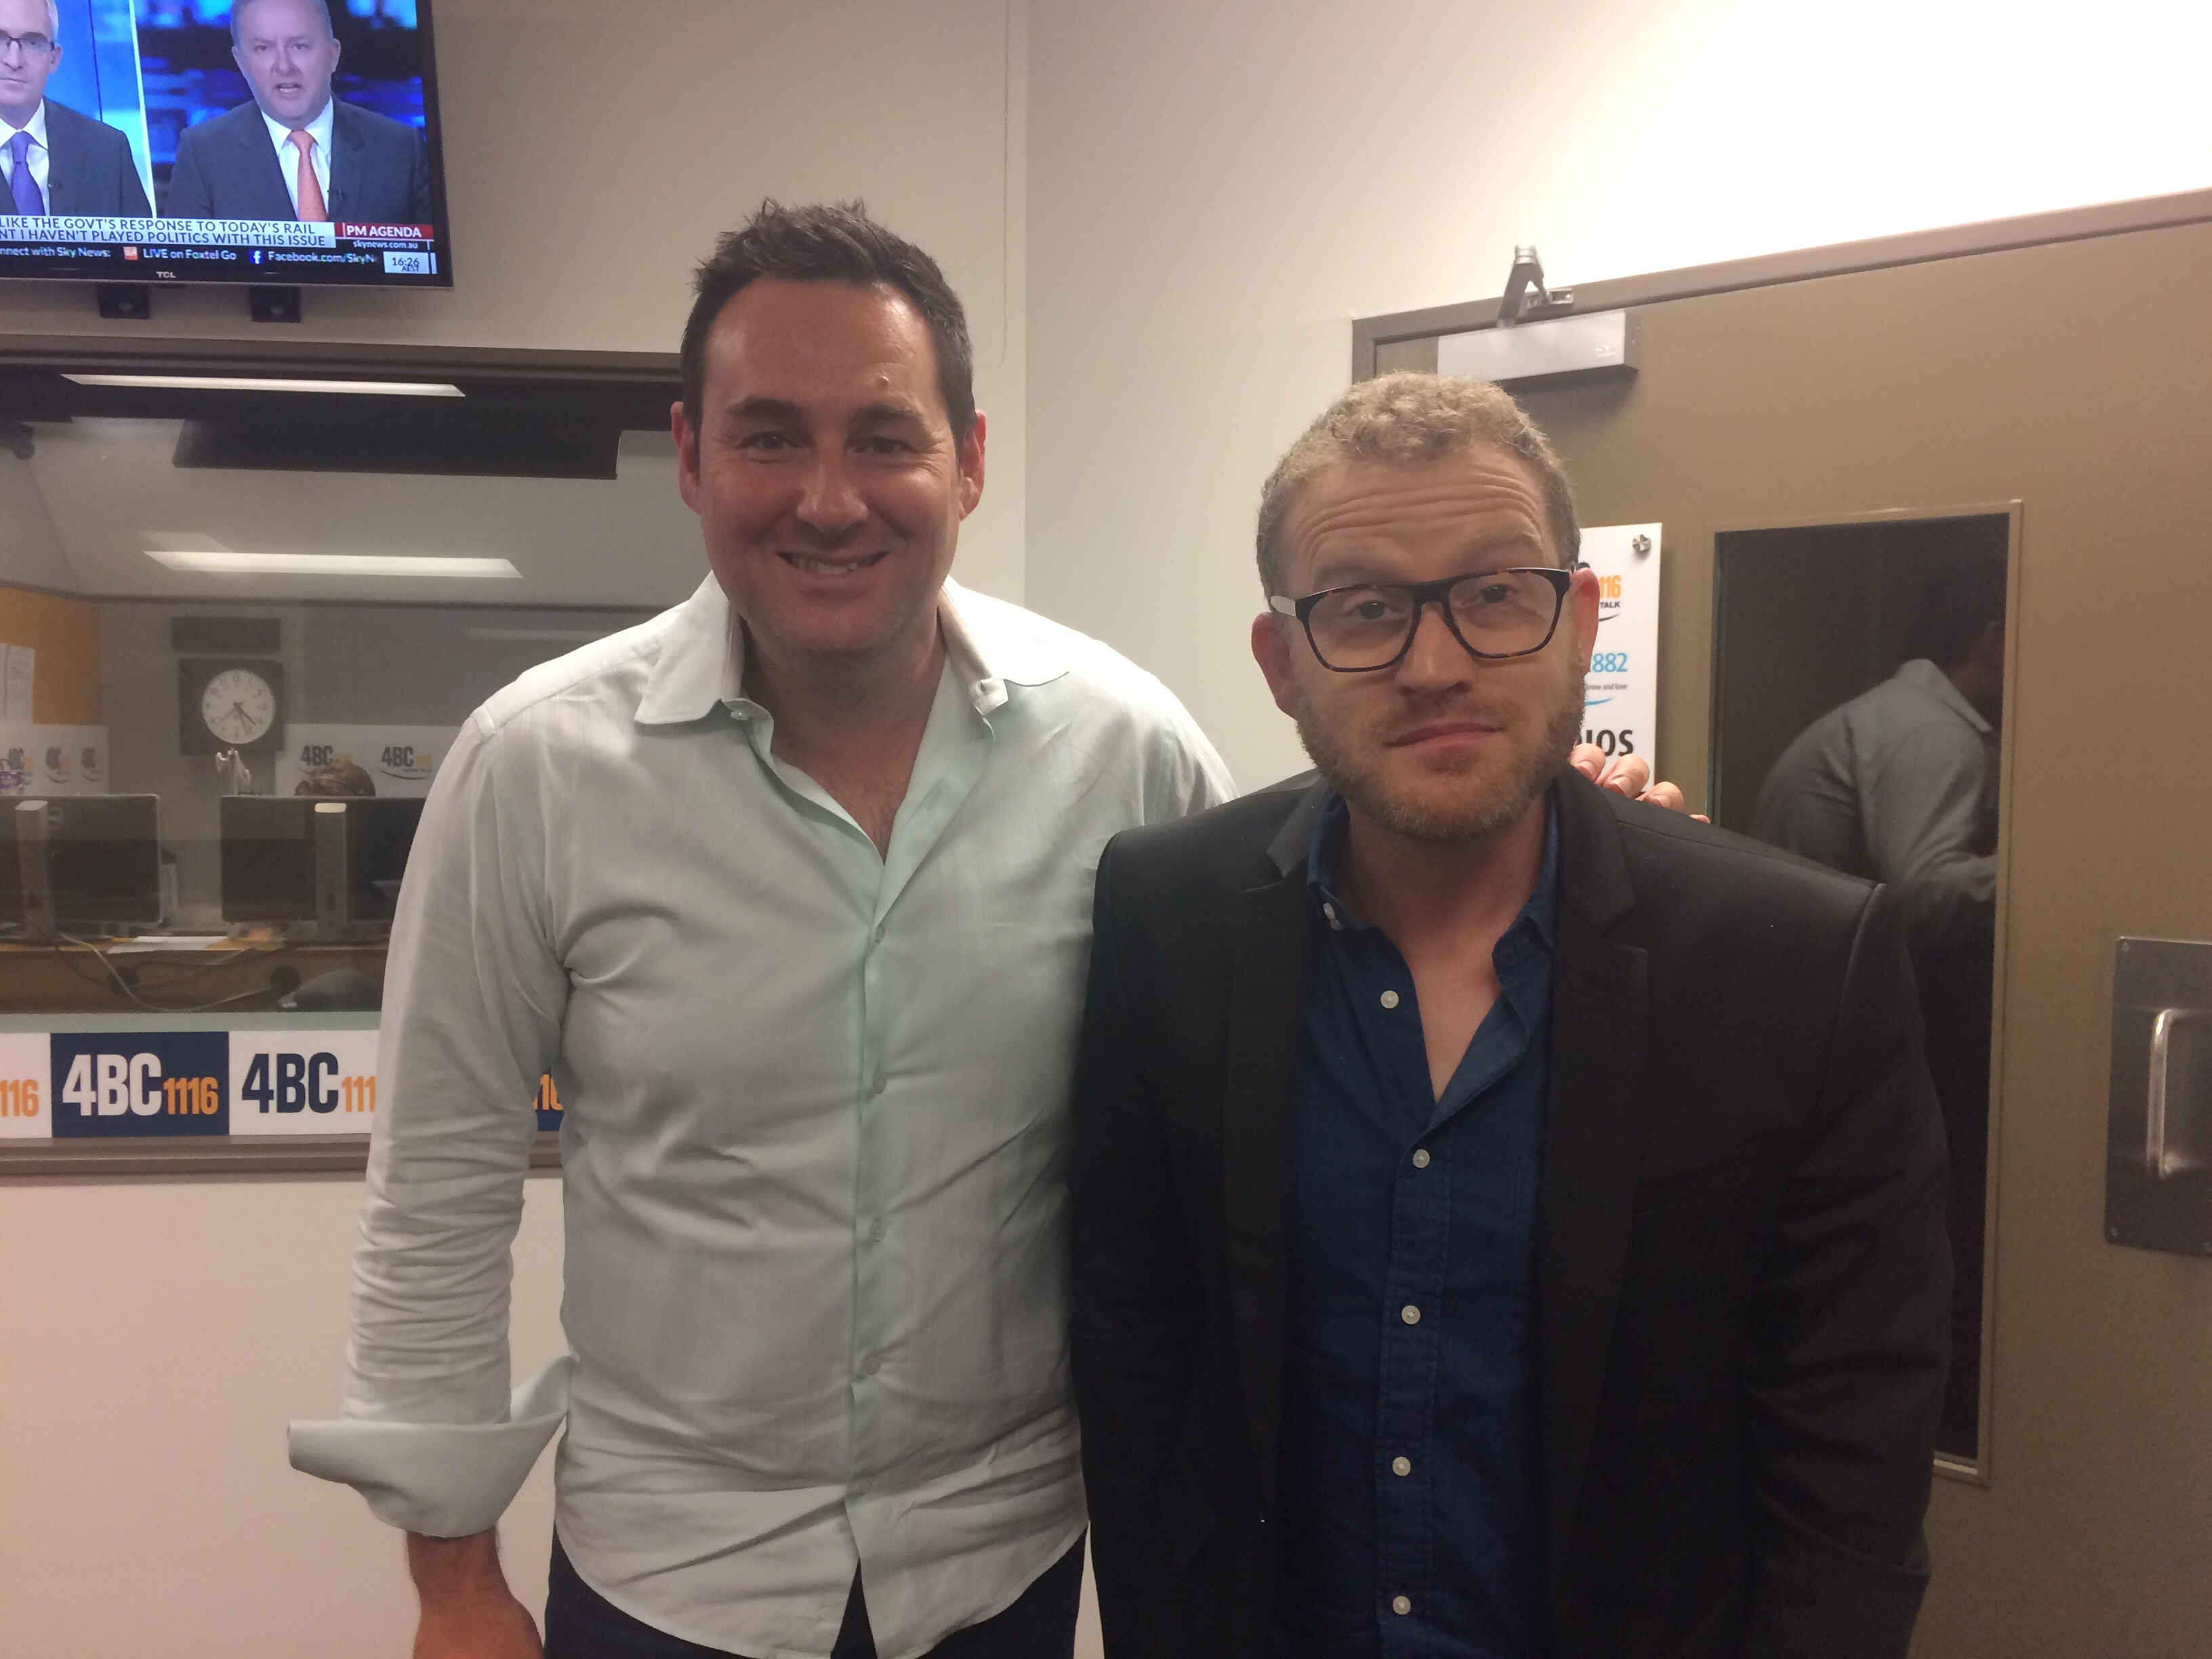 John Safran's Experience with Aussie Extremists